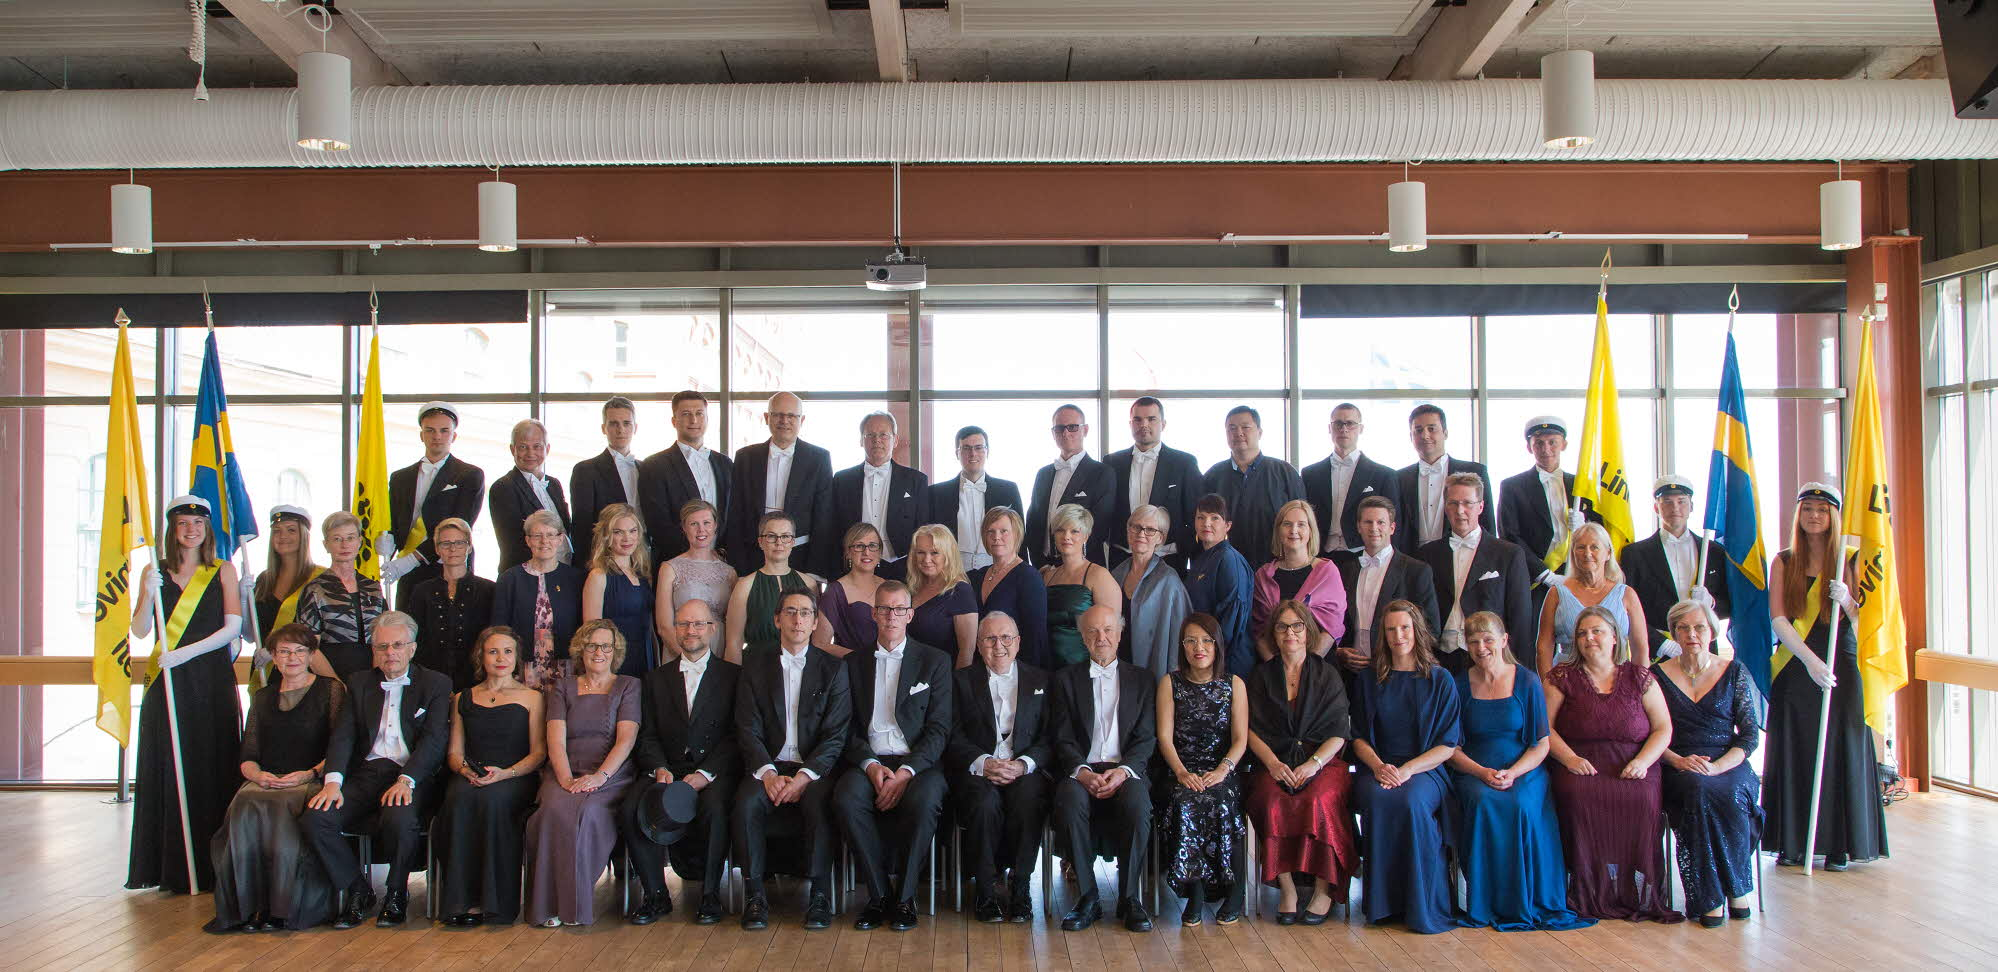 New professors, doctors and honorary doctors